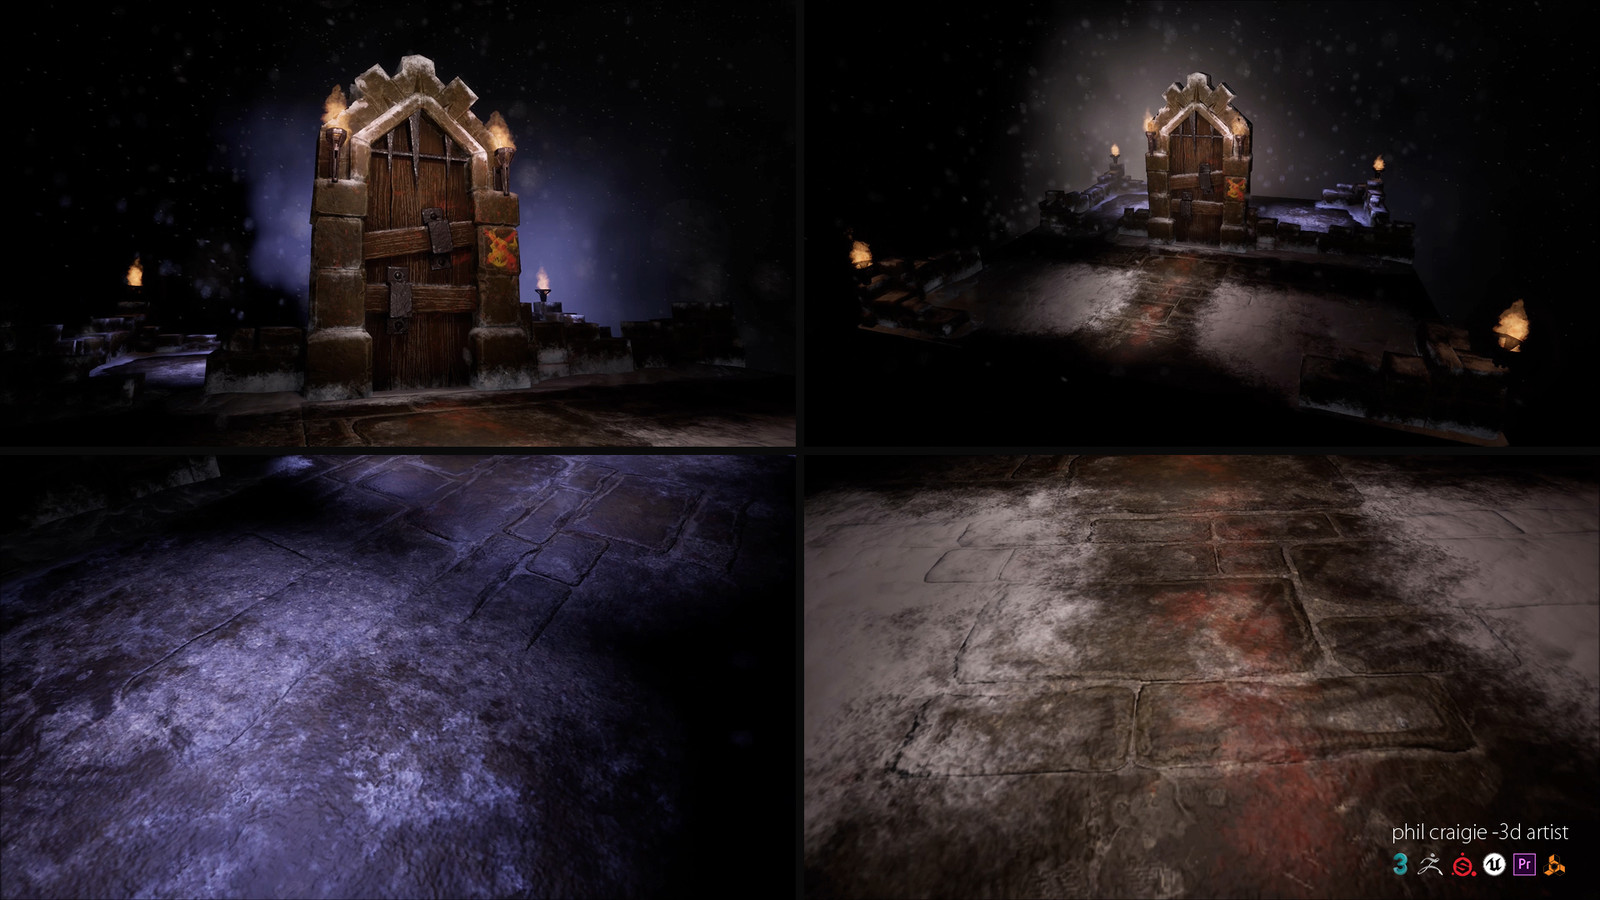 Some still images from the video. Unreal Engine 4.